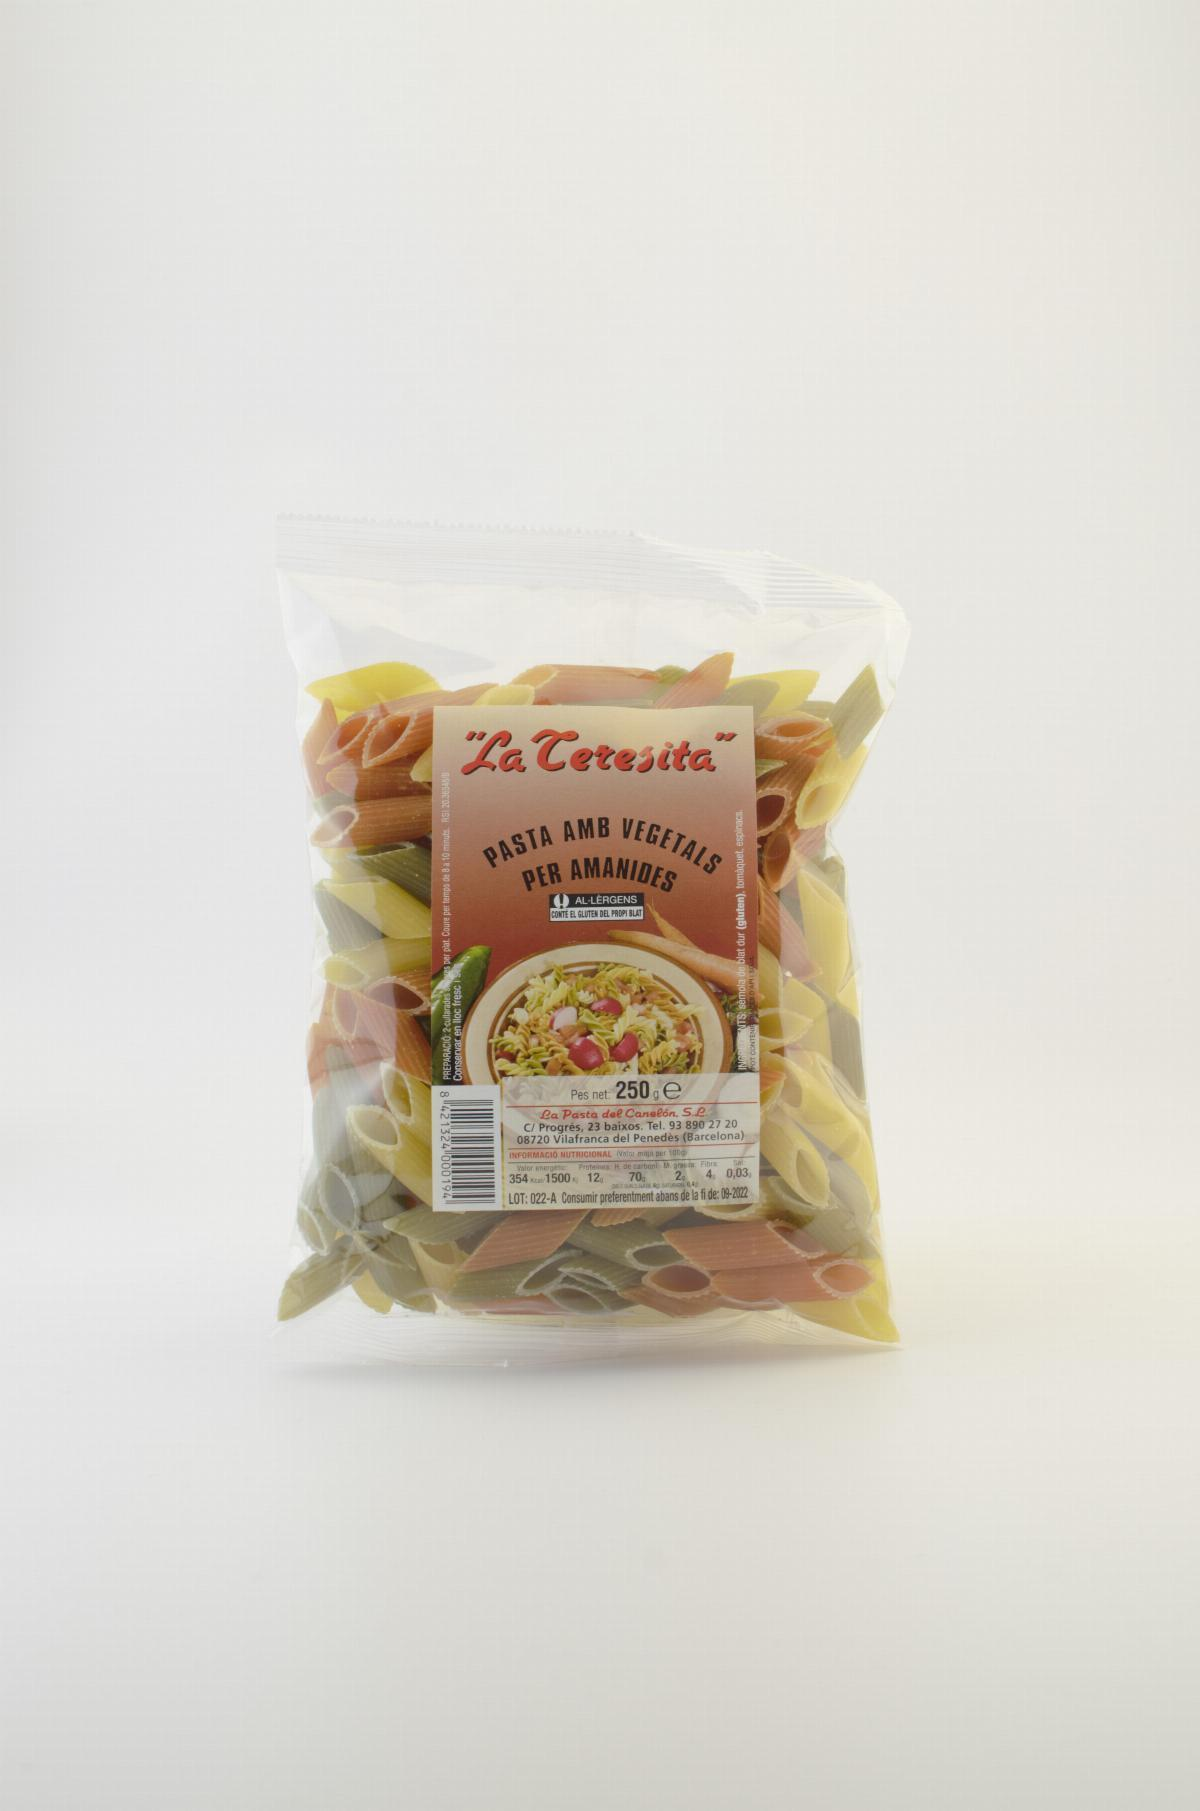 Pasta - Penne pasta tricolour with vegetables La Teresita 250g - Mestral Cambrils